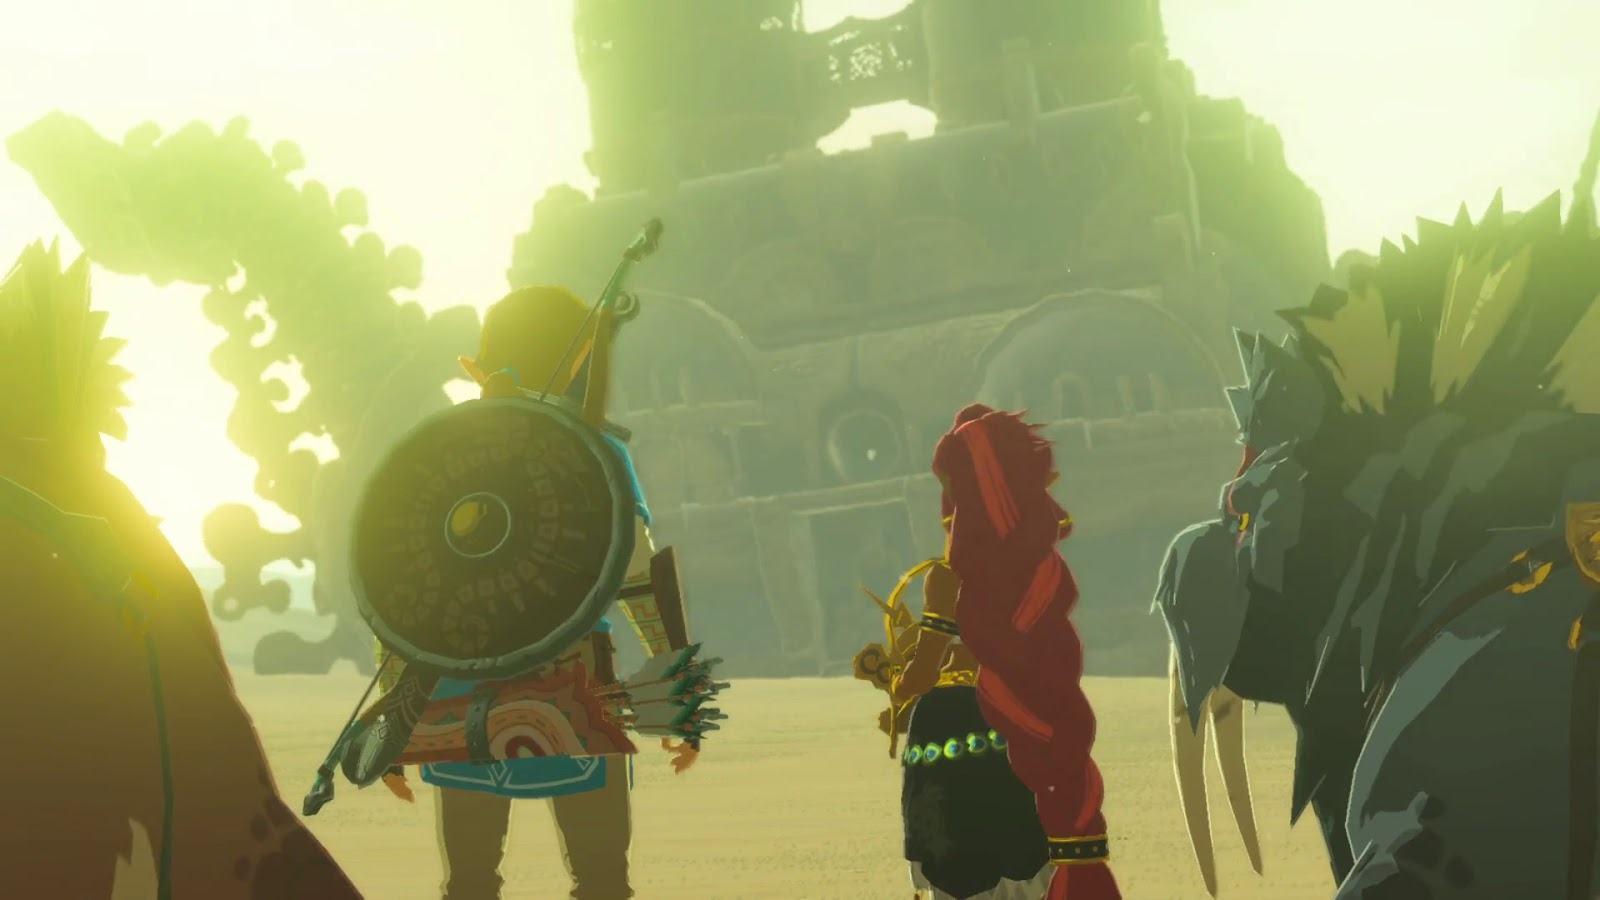 Botw_screen_switchpresentation_giantguardian_desert